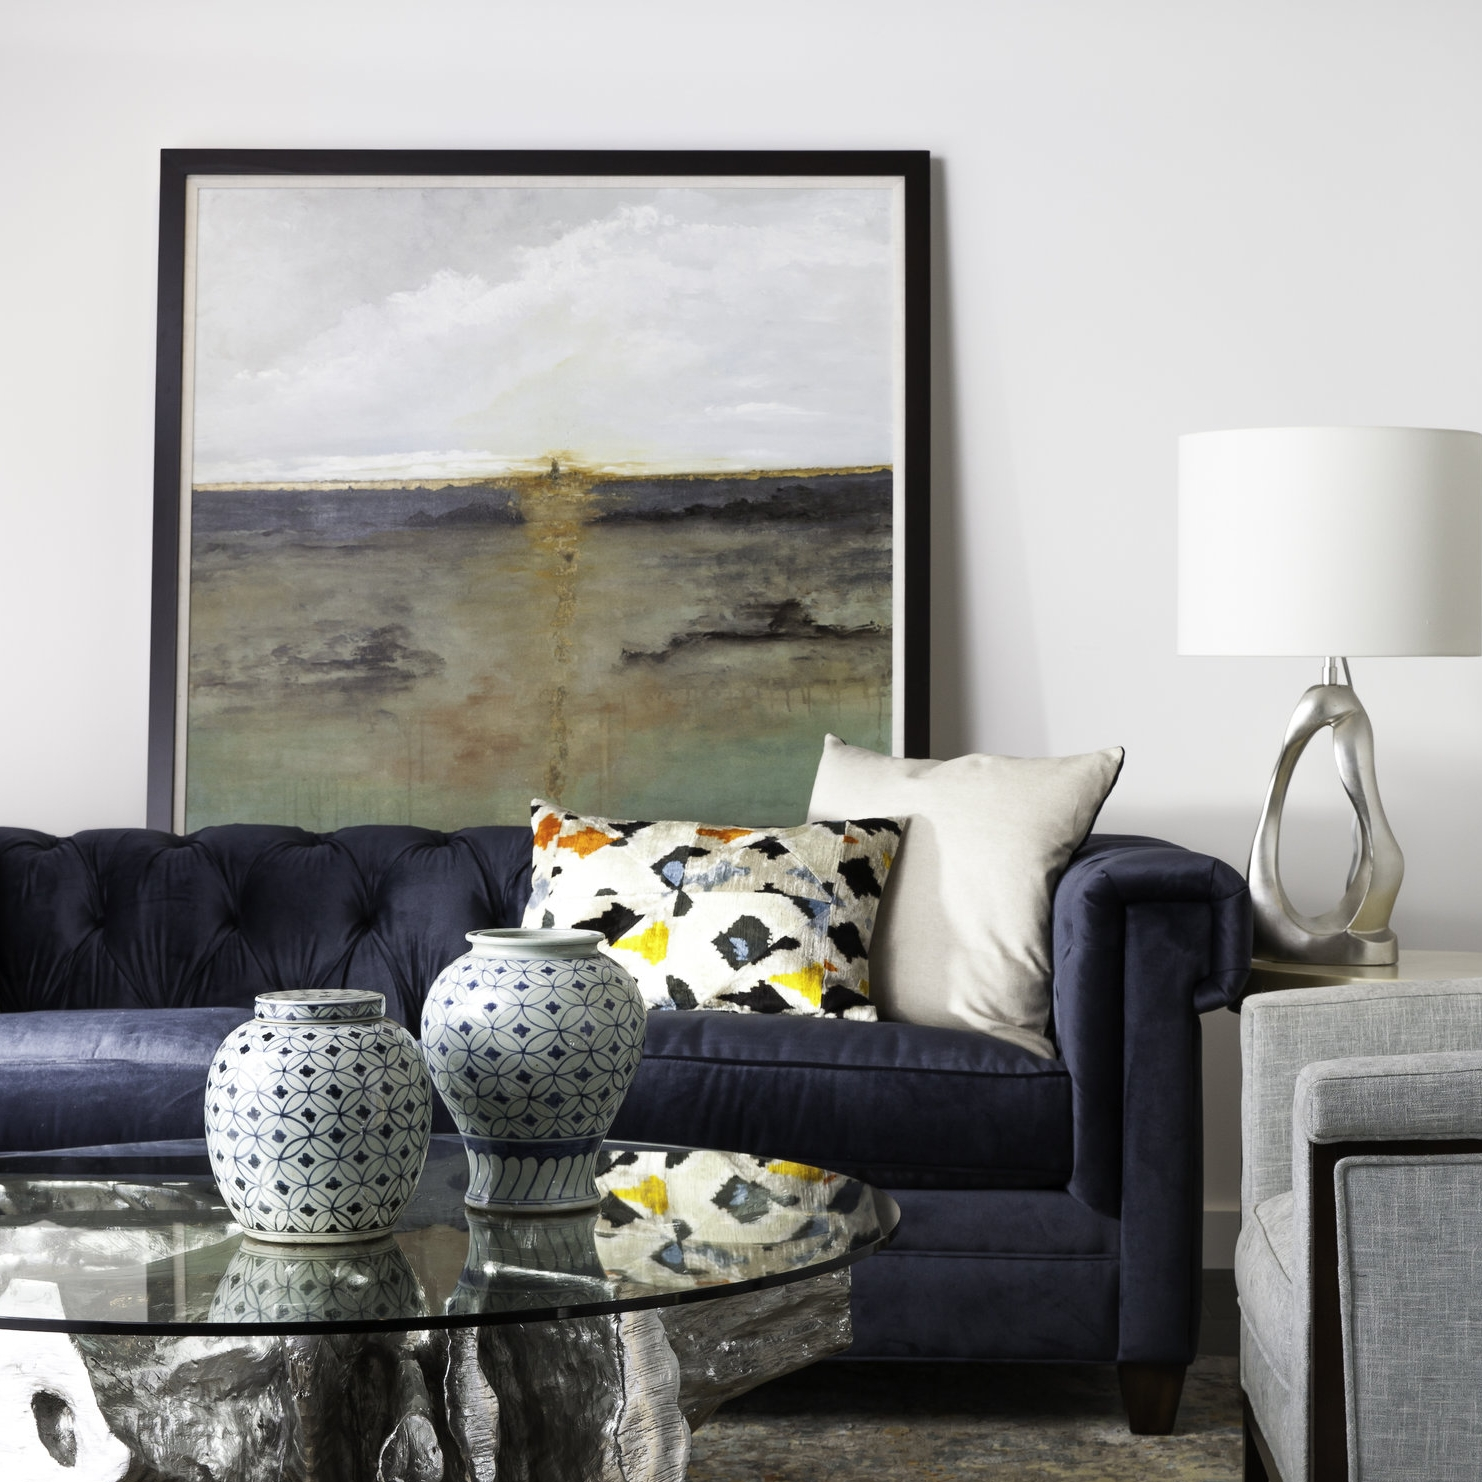 Designer Furniture Store In Norman Henry Home Interiors